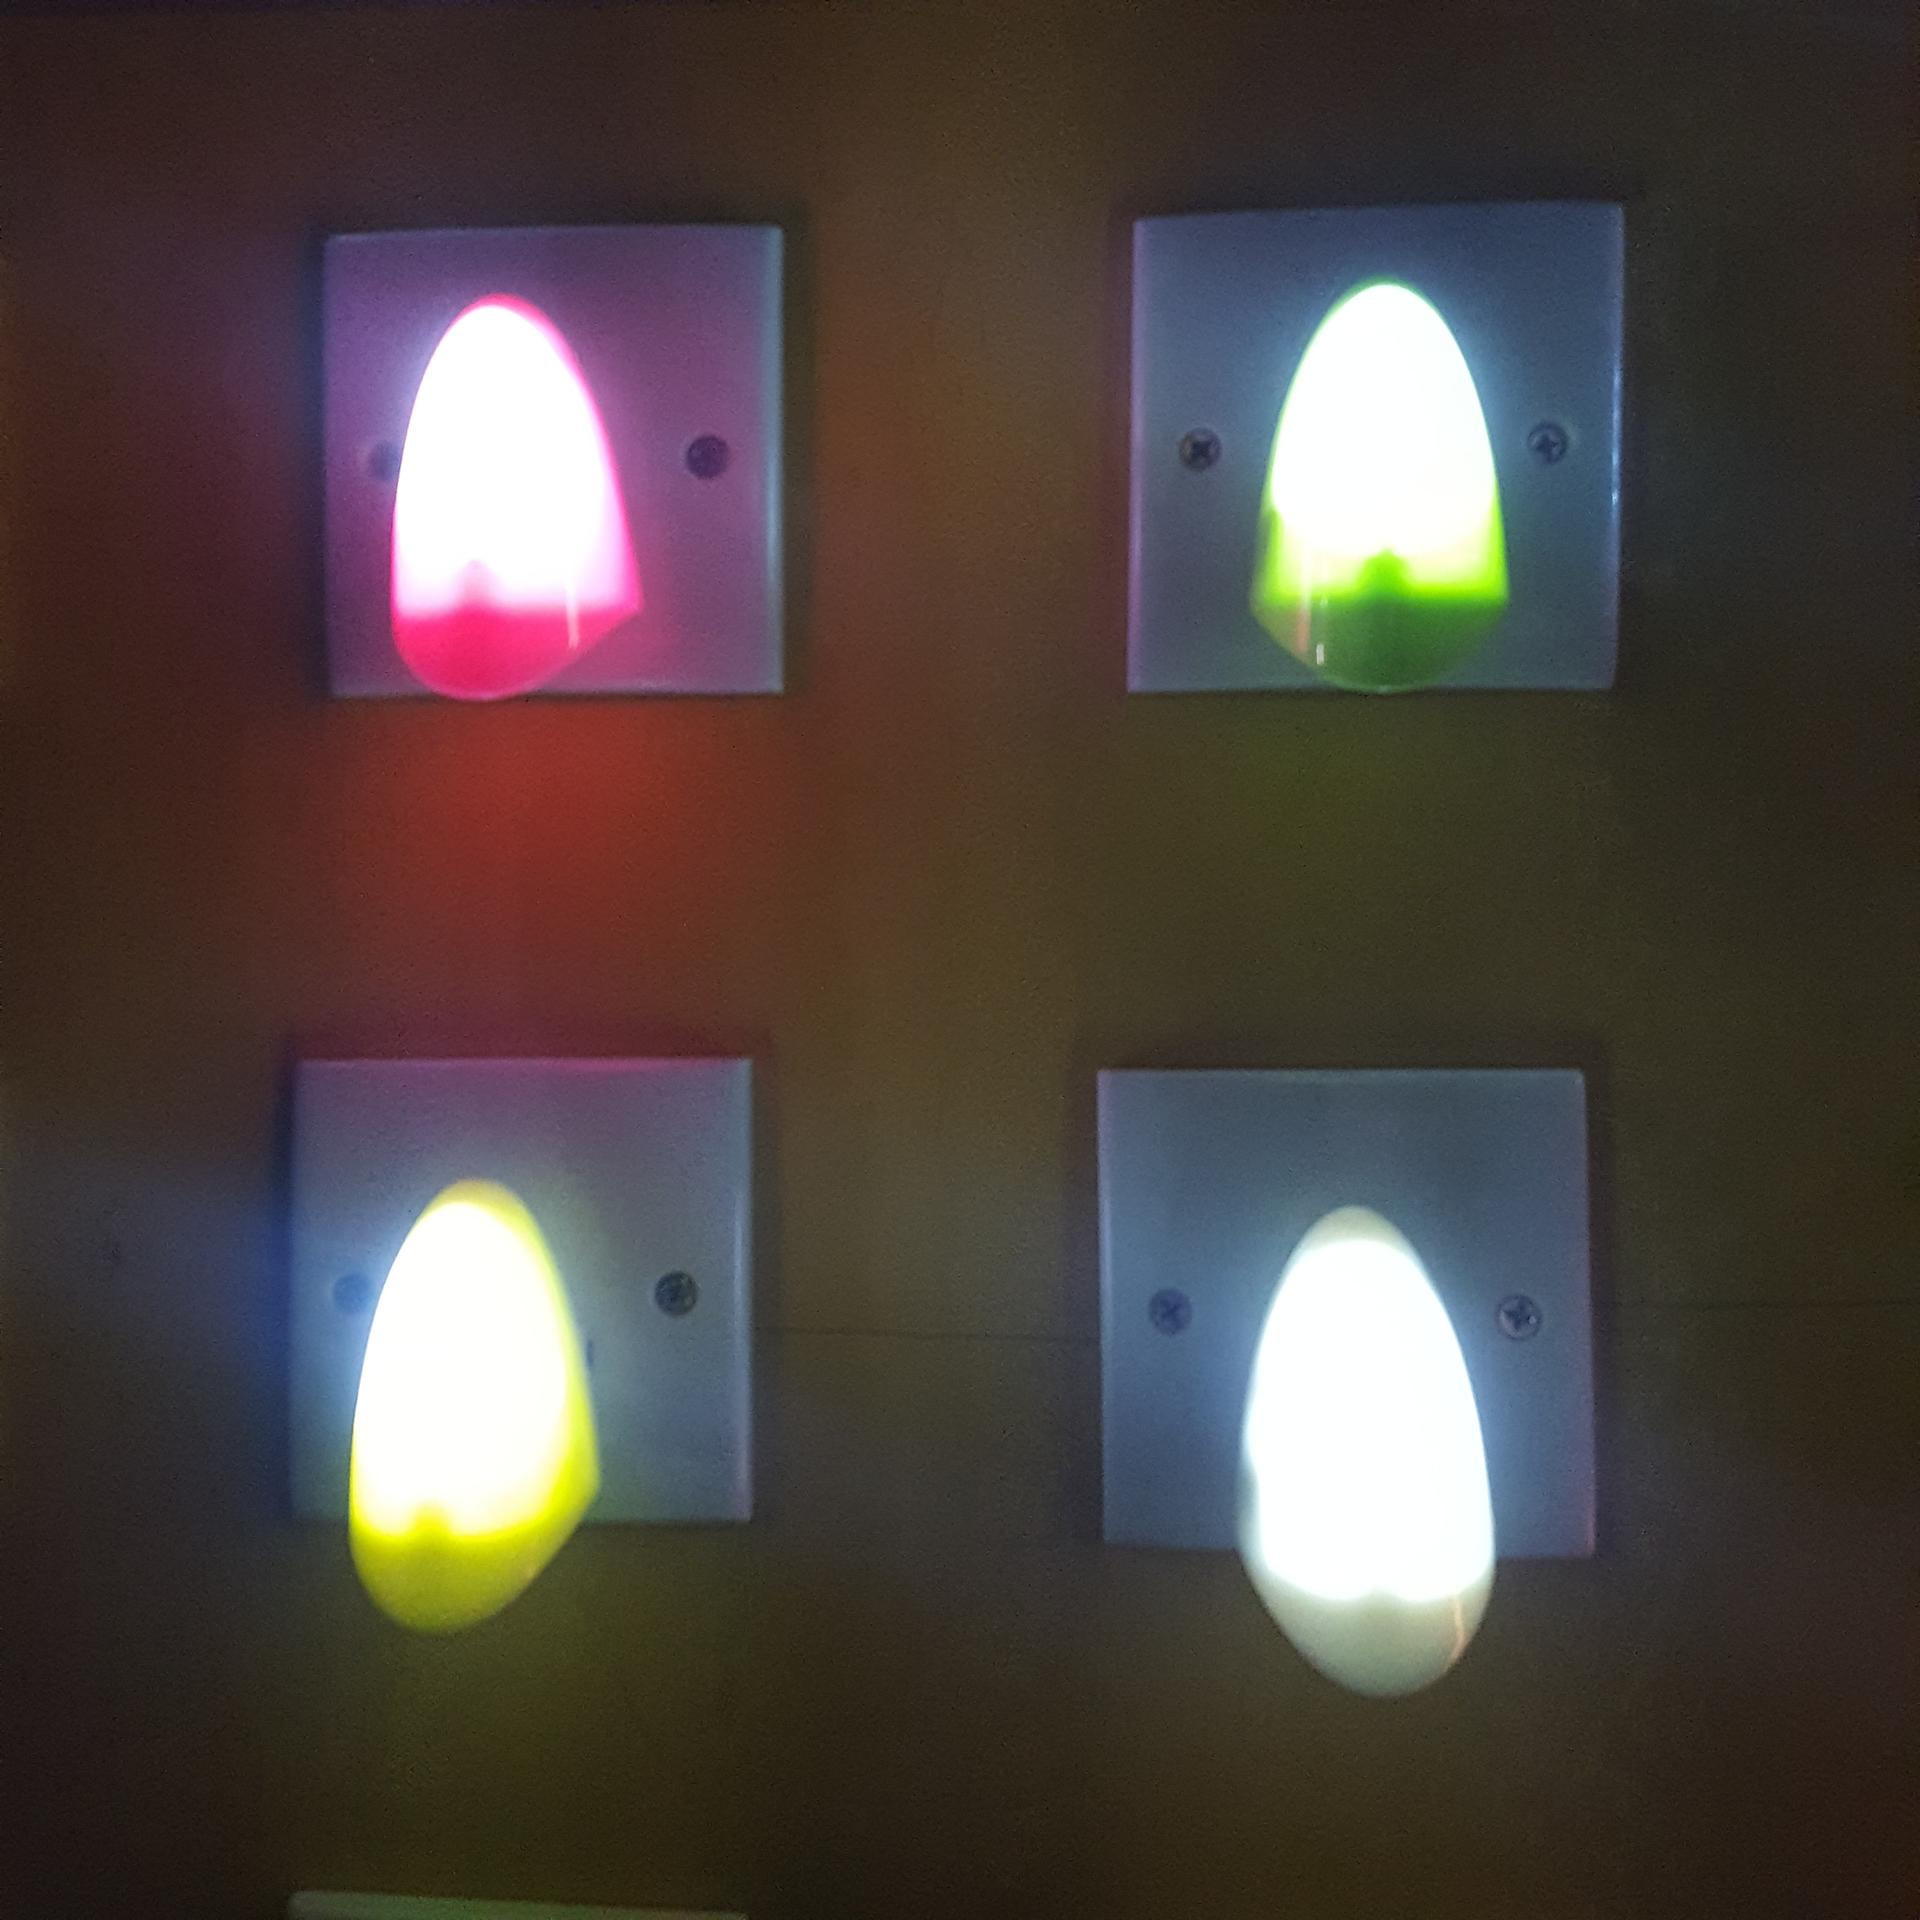 A50 OEMled abs material sensor PLUG IN night light lamp for bedroom hallway